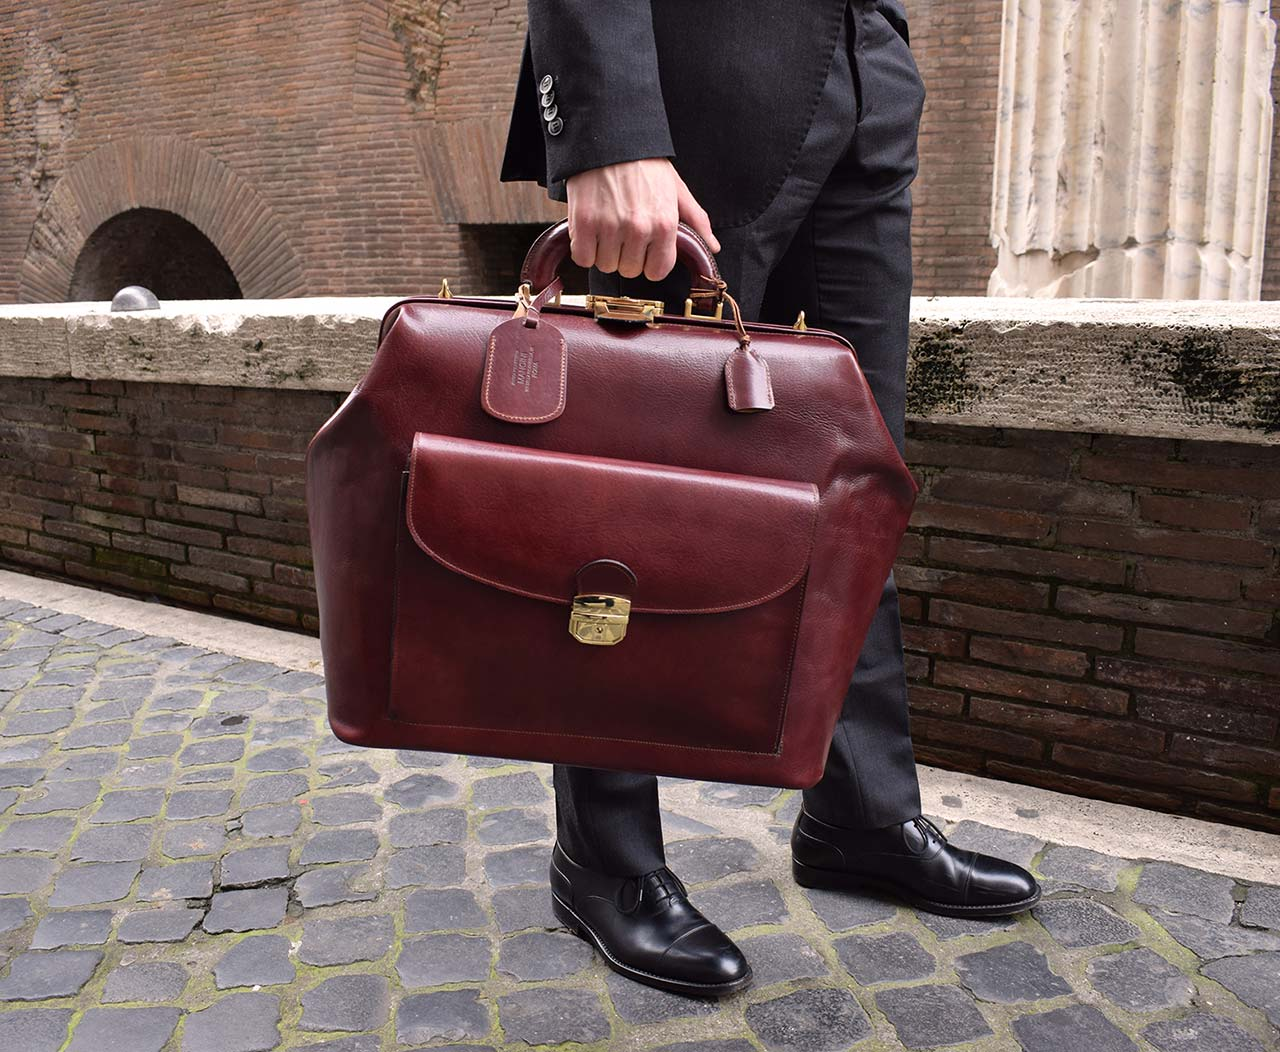 Italian leather handmade travel bag, Mancini Leather Since 1918